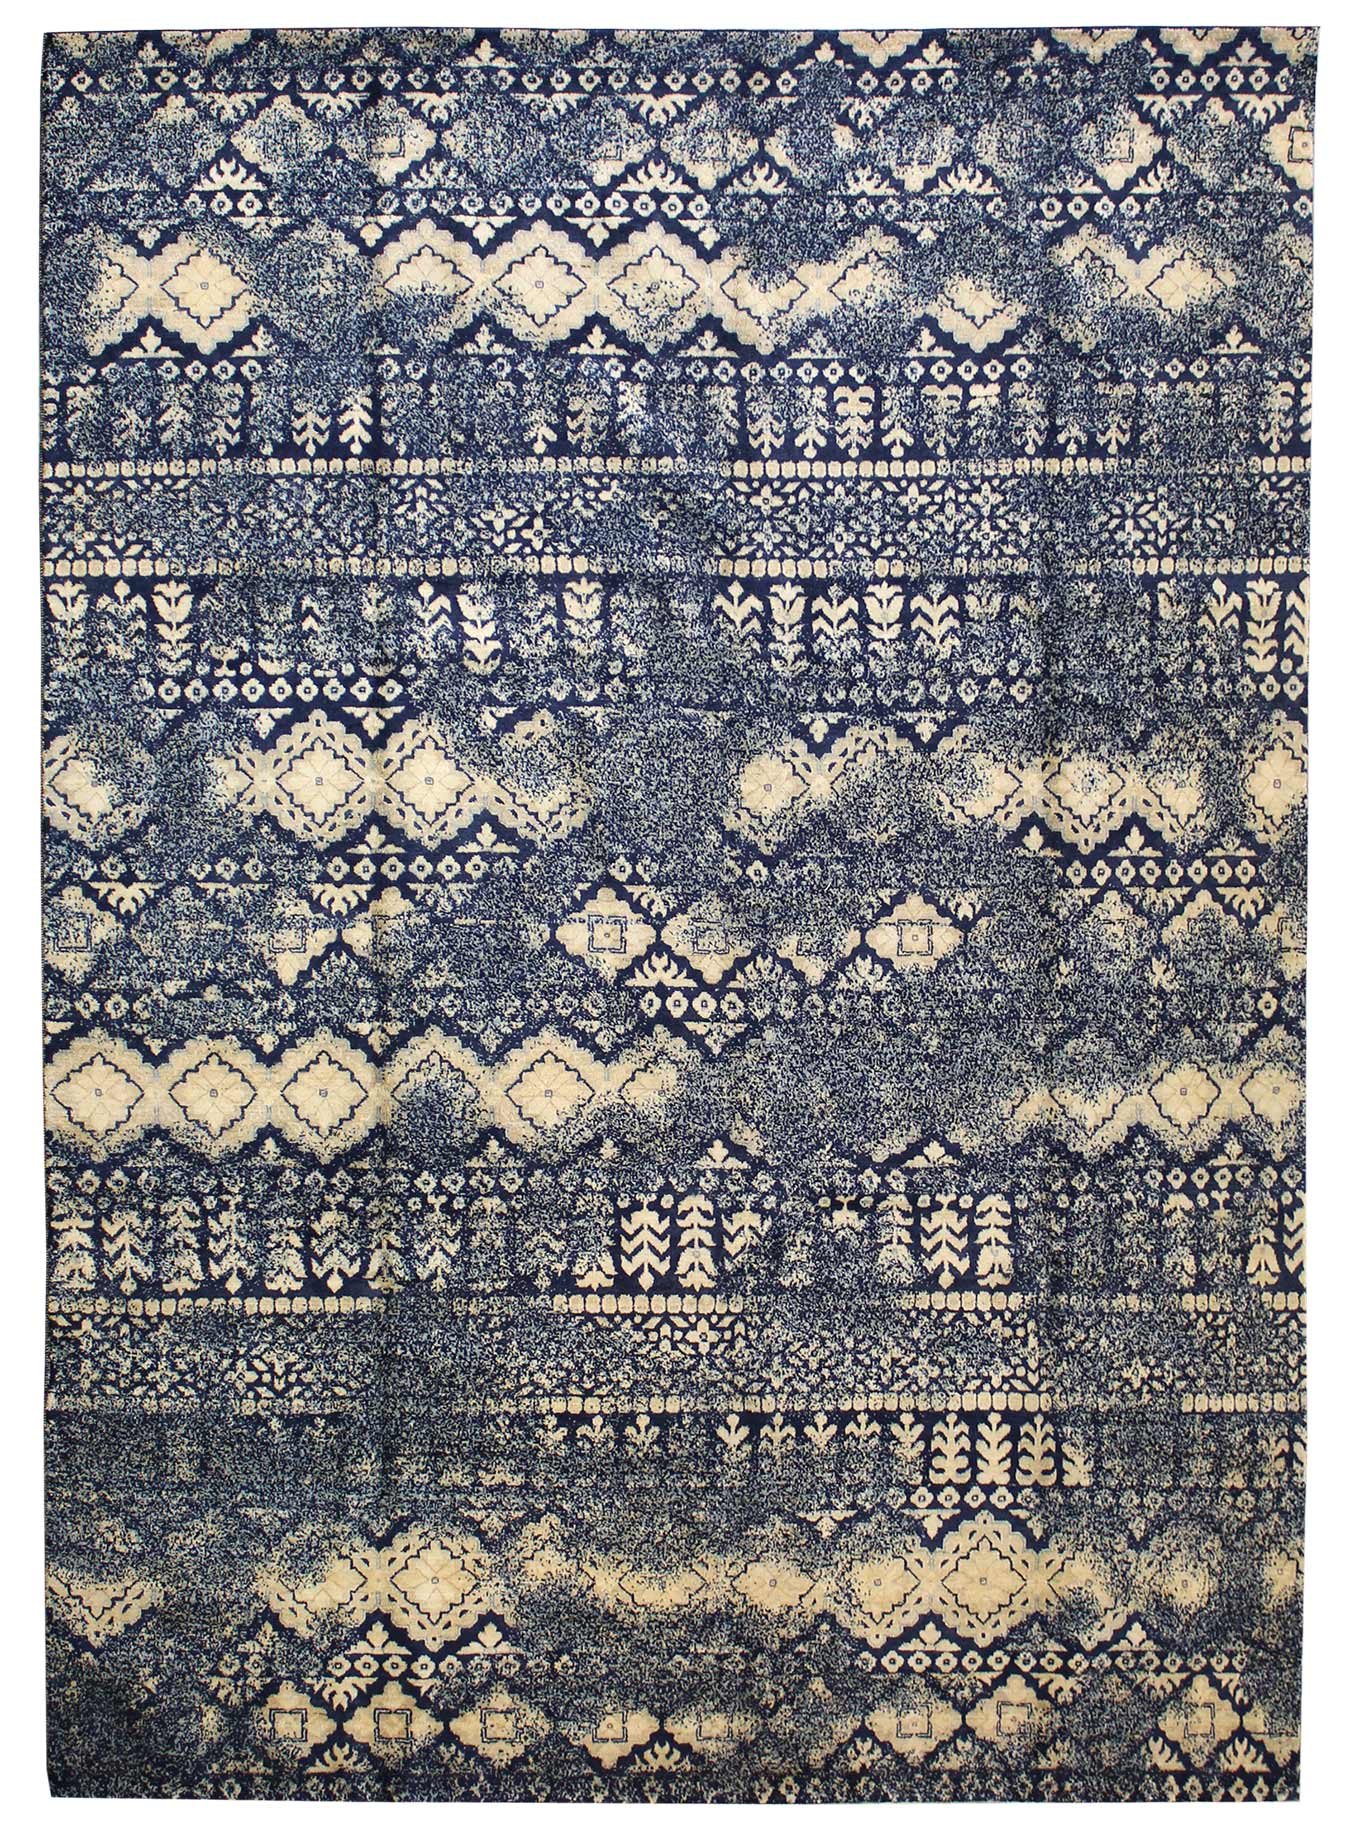 Fair Isle Handwoven Transitional Rug